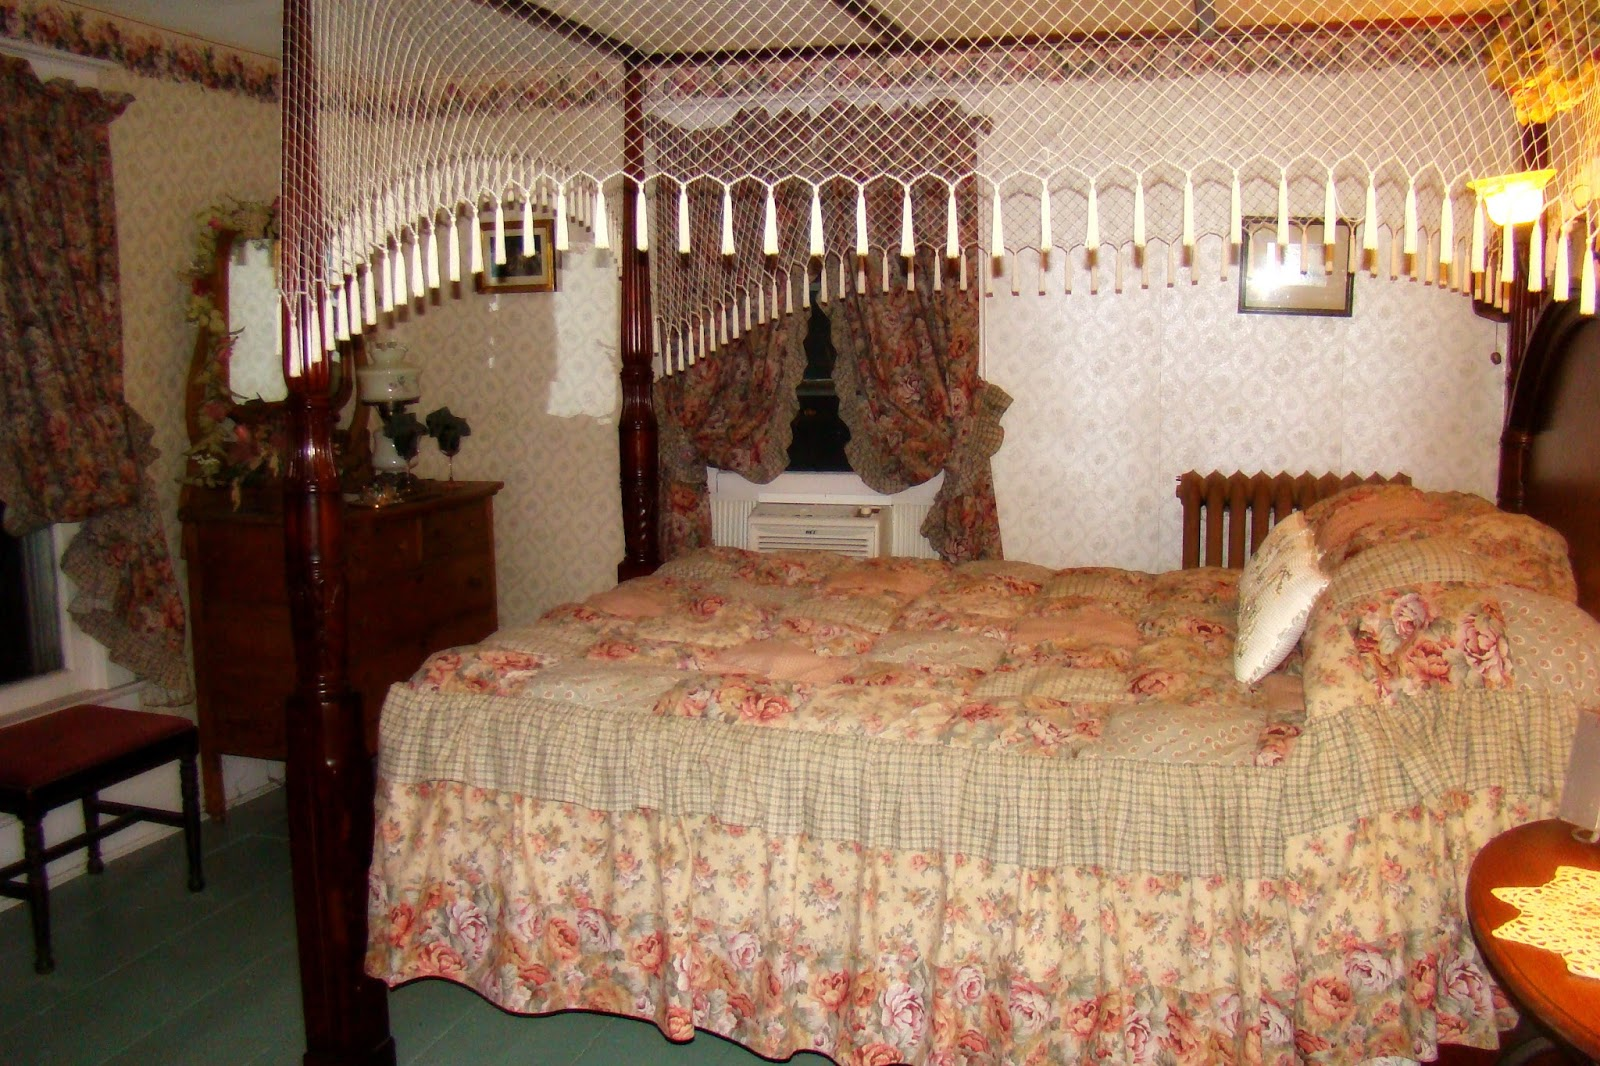 Upstate New York Bed And Breakfast Near Wineries